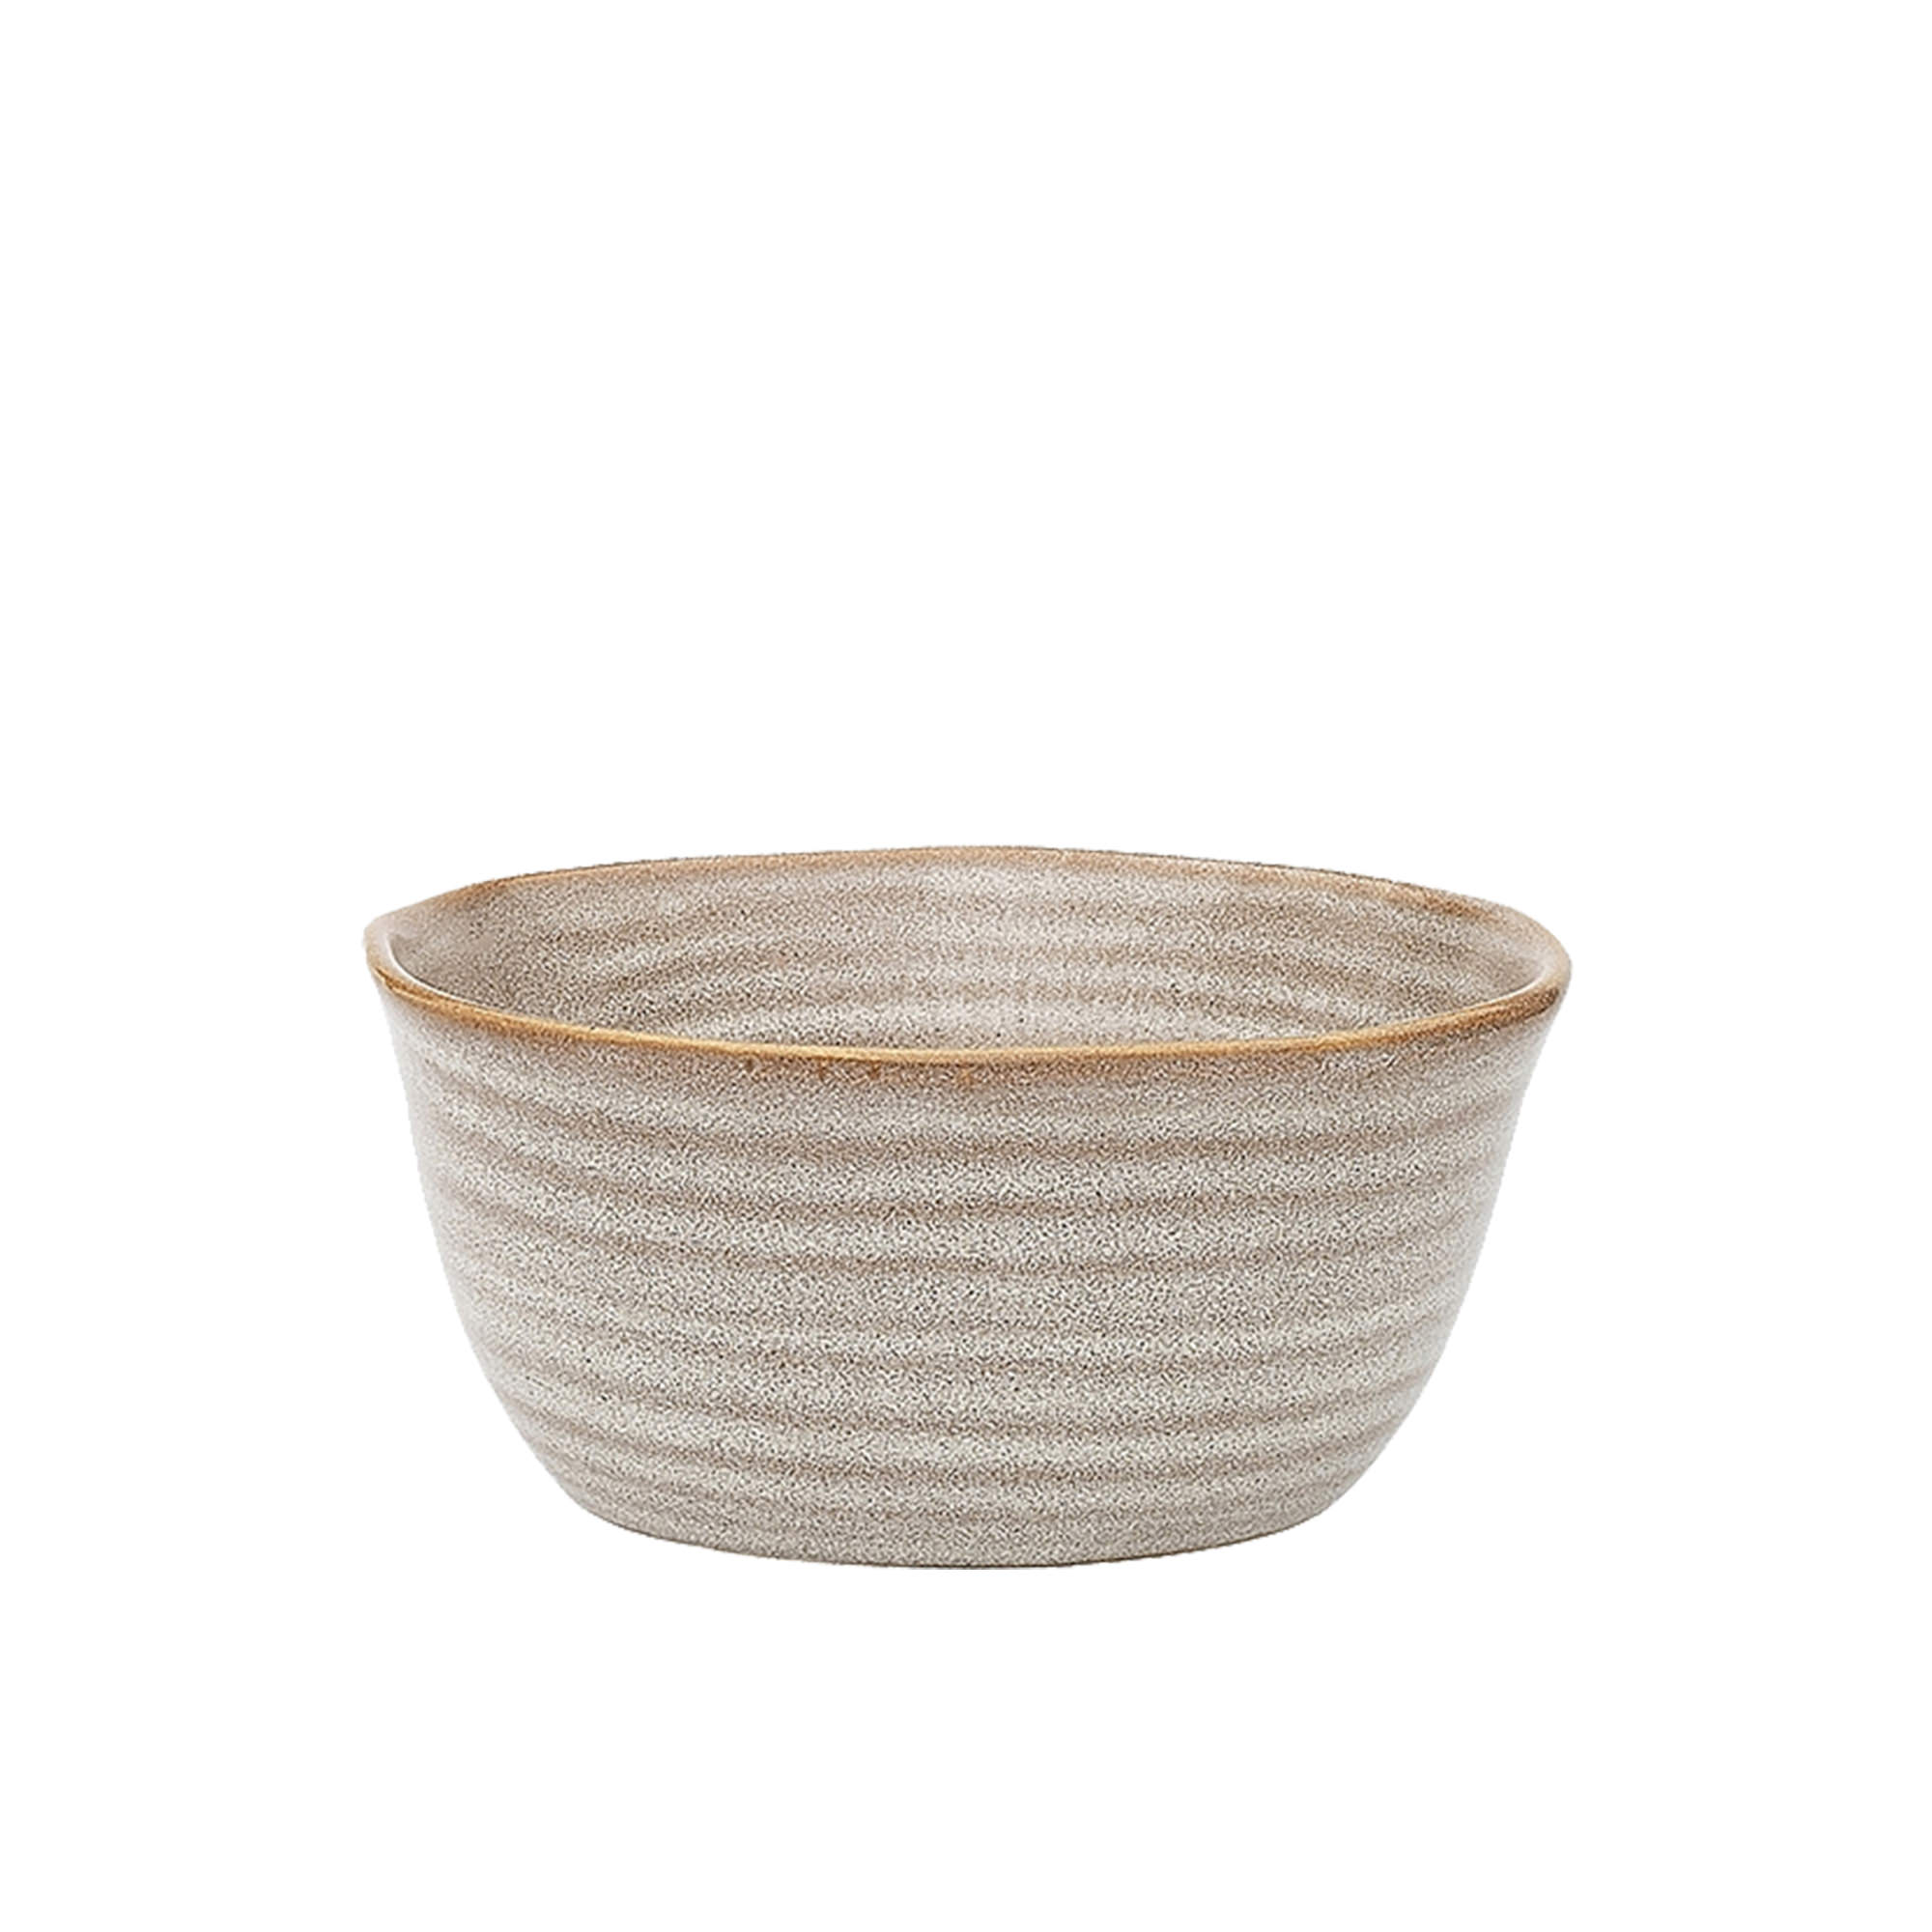 Ecology Ottawa Rice Bowl 13.5cm Barley